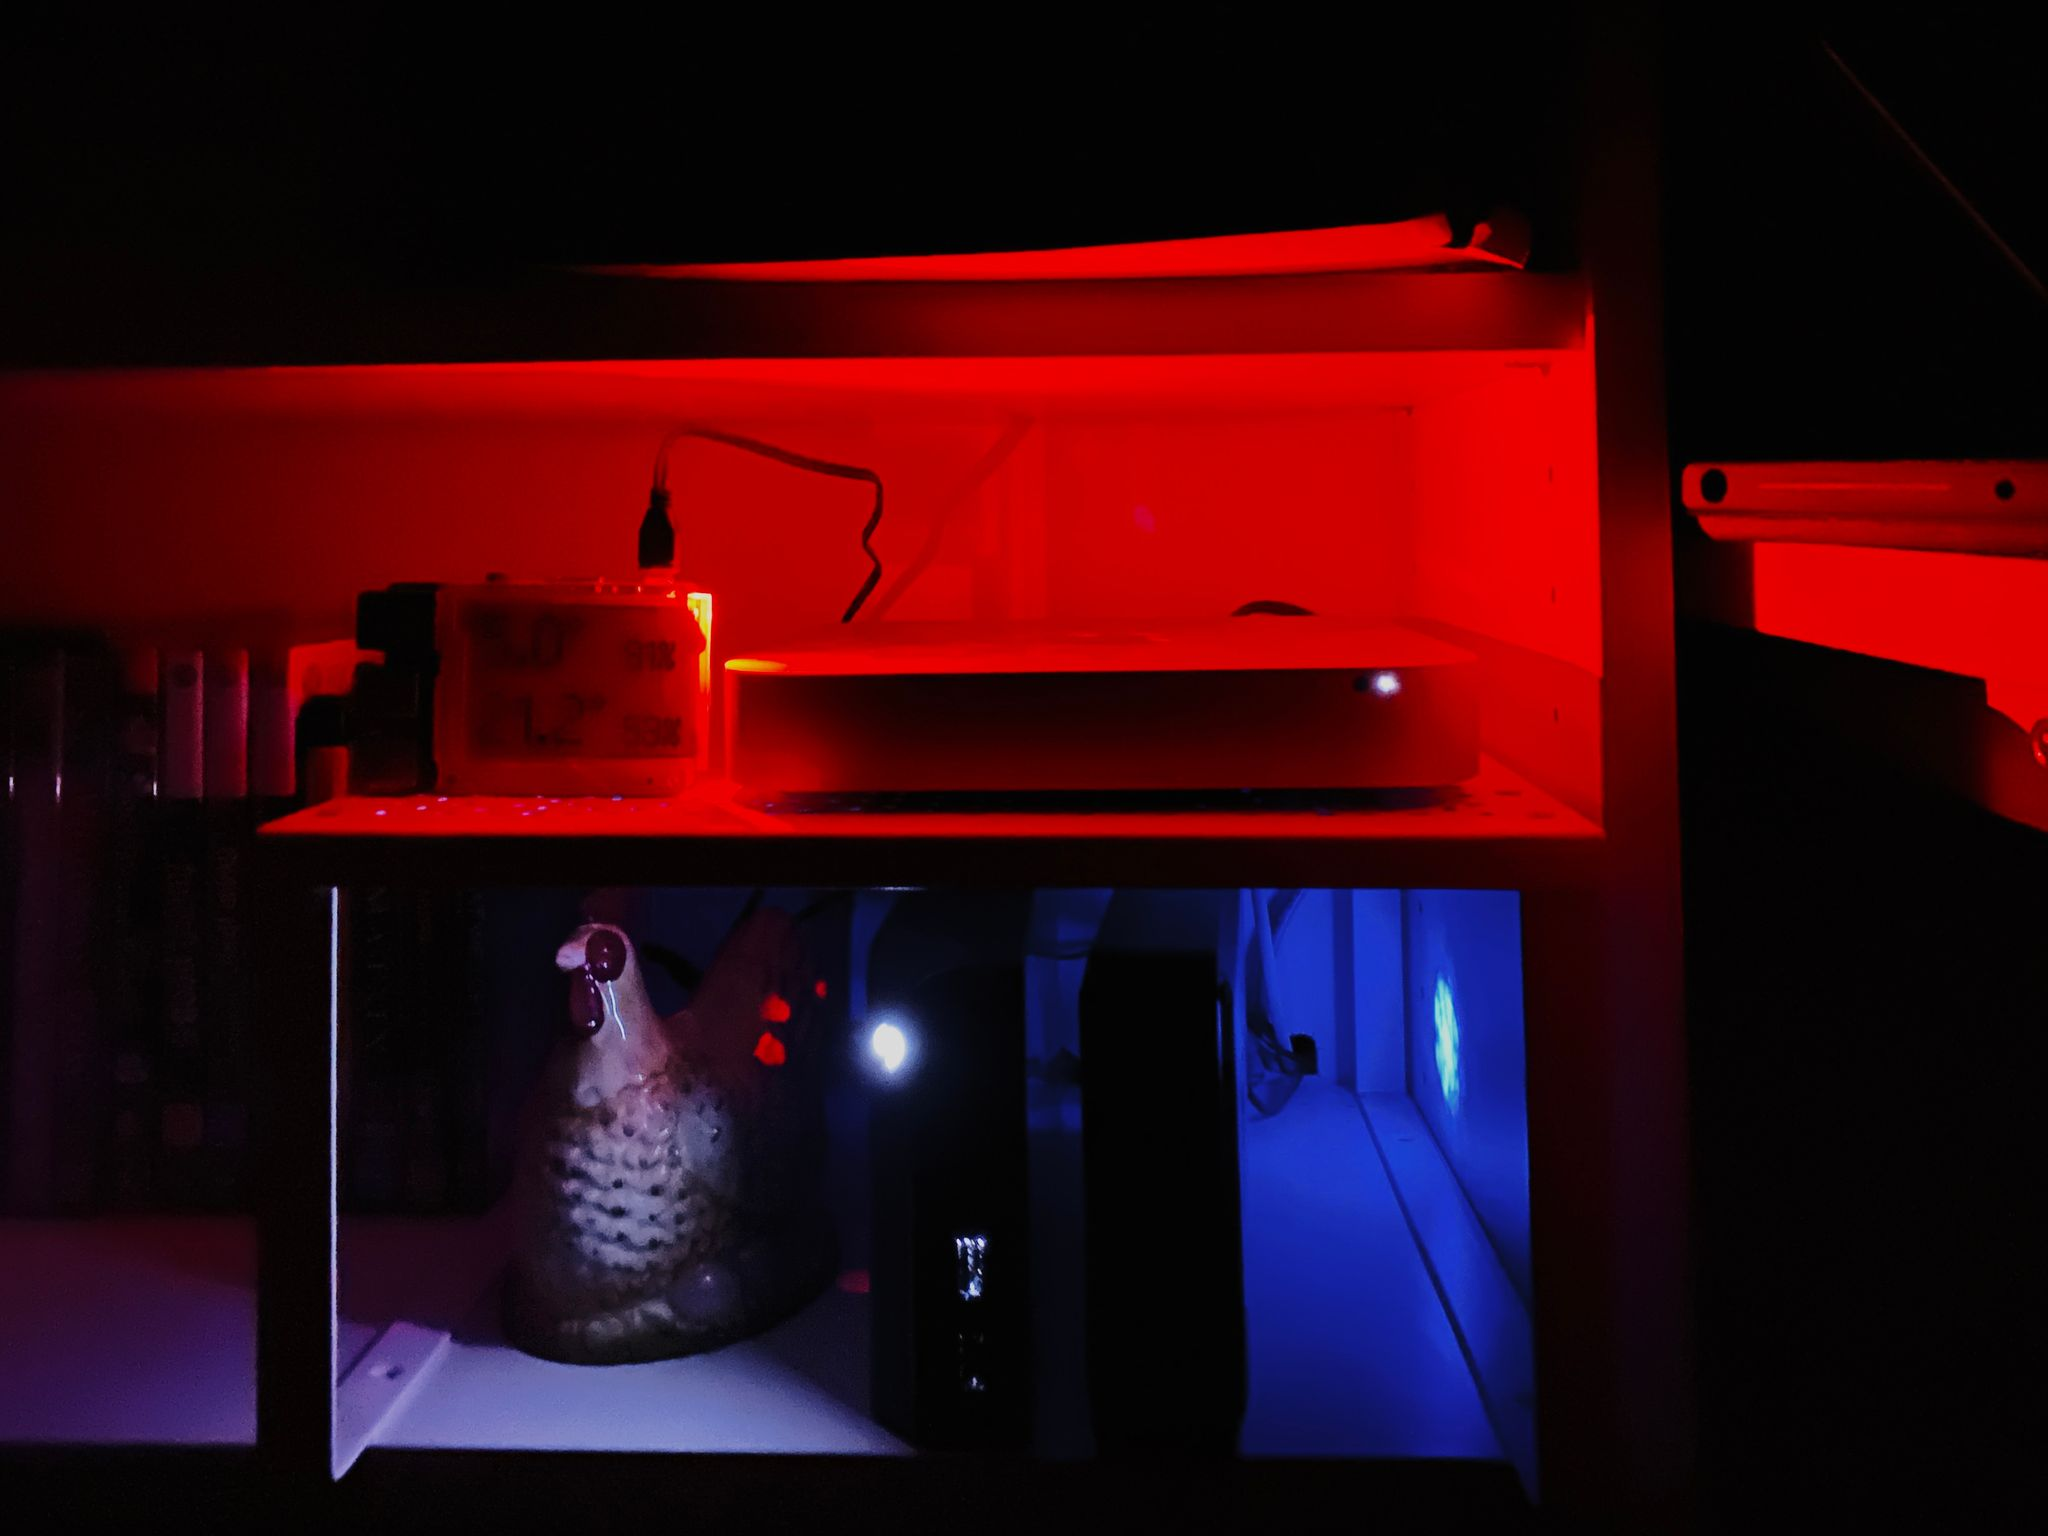 A photo of a Mac mini on a small shelf with a Raspberry Pi next to it. The power LED on the Pi is emitting a REALLY deep rich red. Under the shelf are two external hard disks with blue LEDs in them, and to the left of them is a dubious-looking ceramic chicken. There's no light at all apart from what's coming from the LEDs.